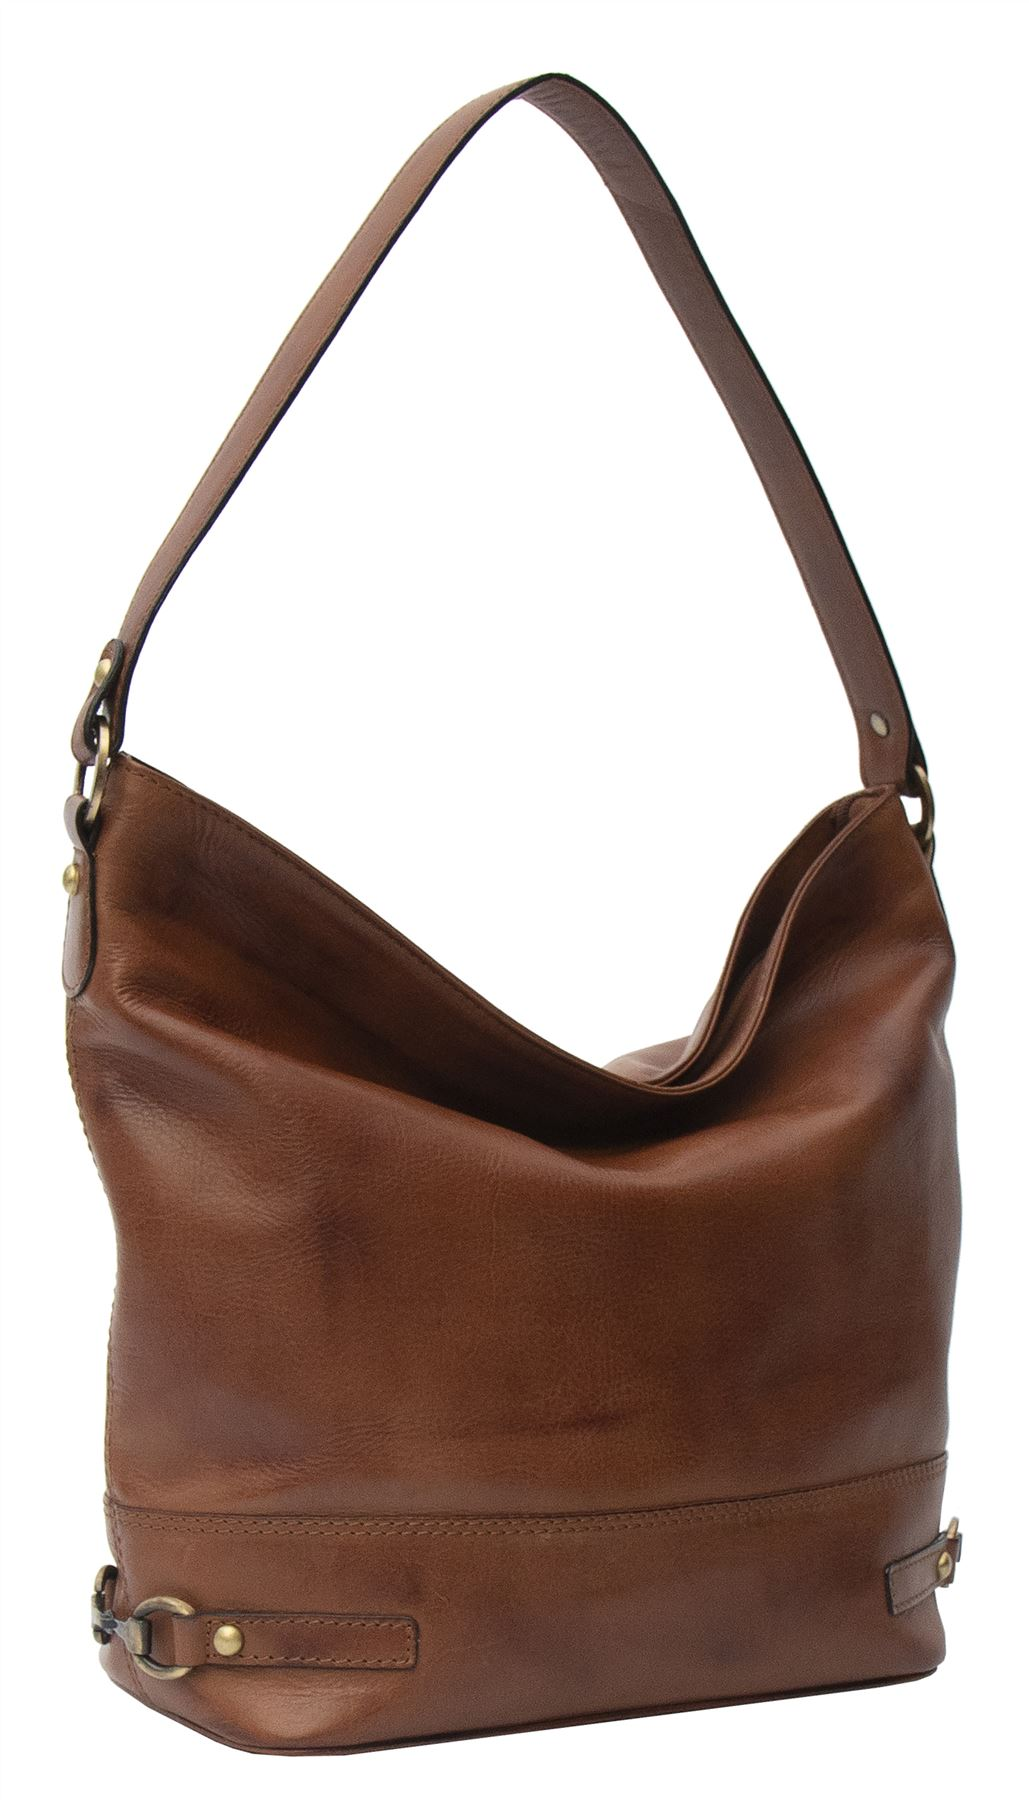 Ridgeback Leather Hobo Shoulder Handbag - 679